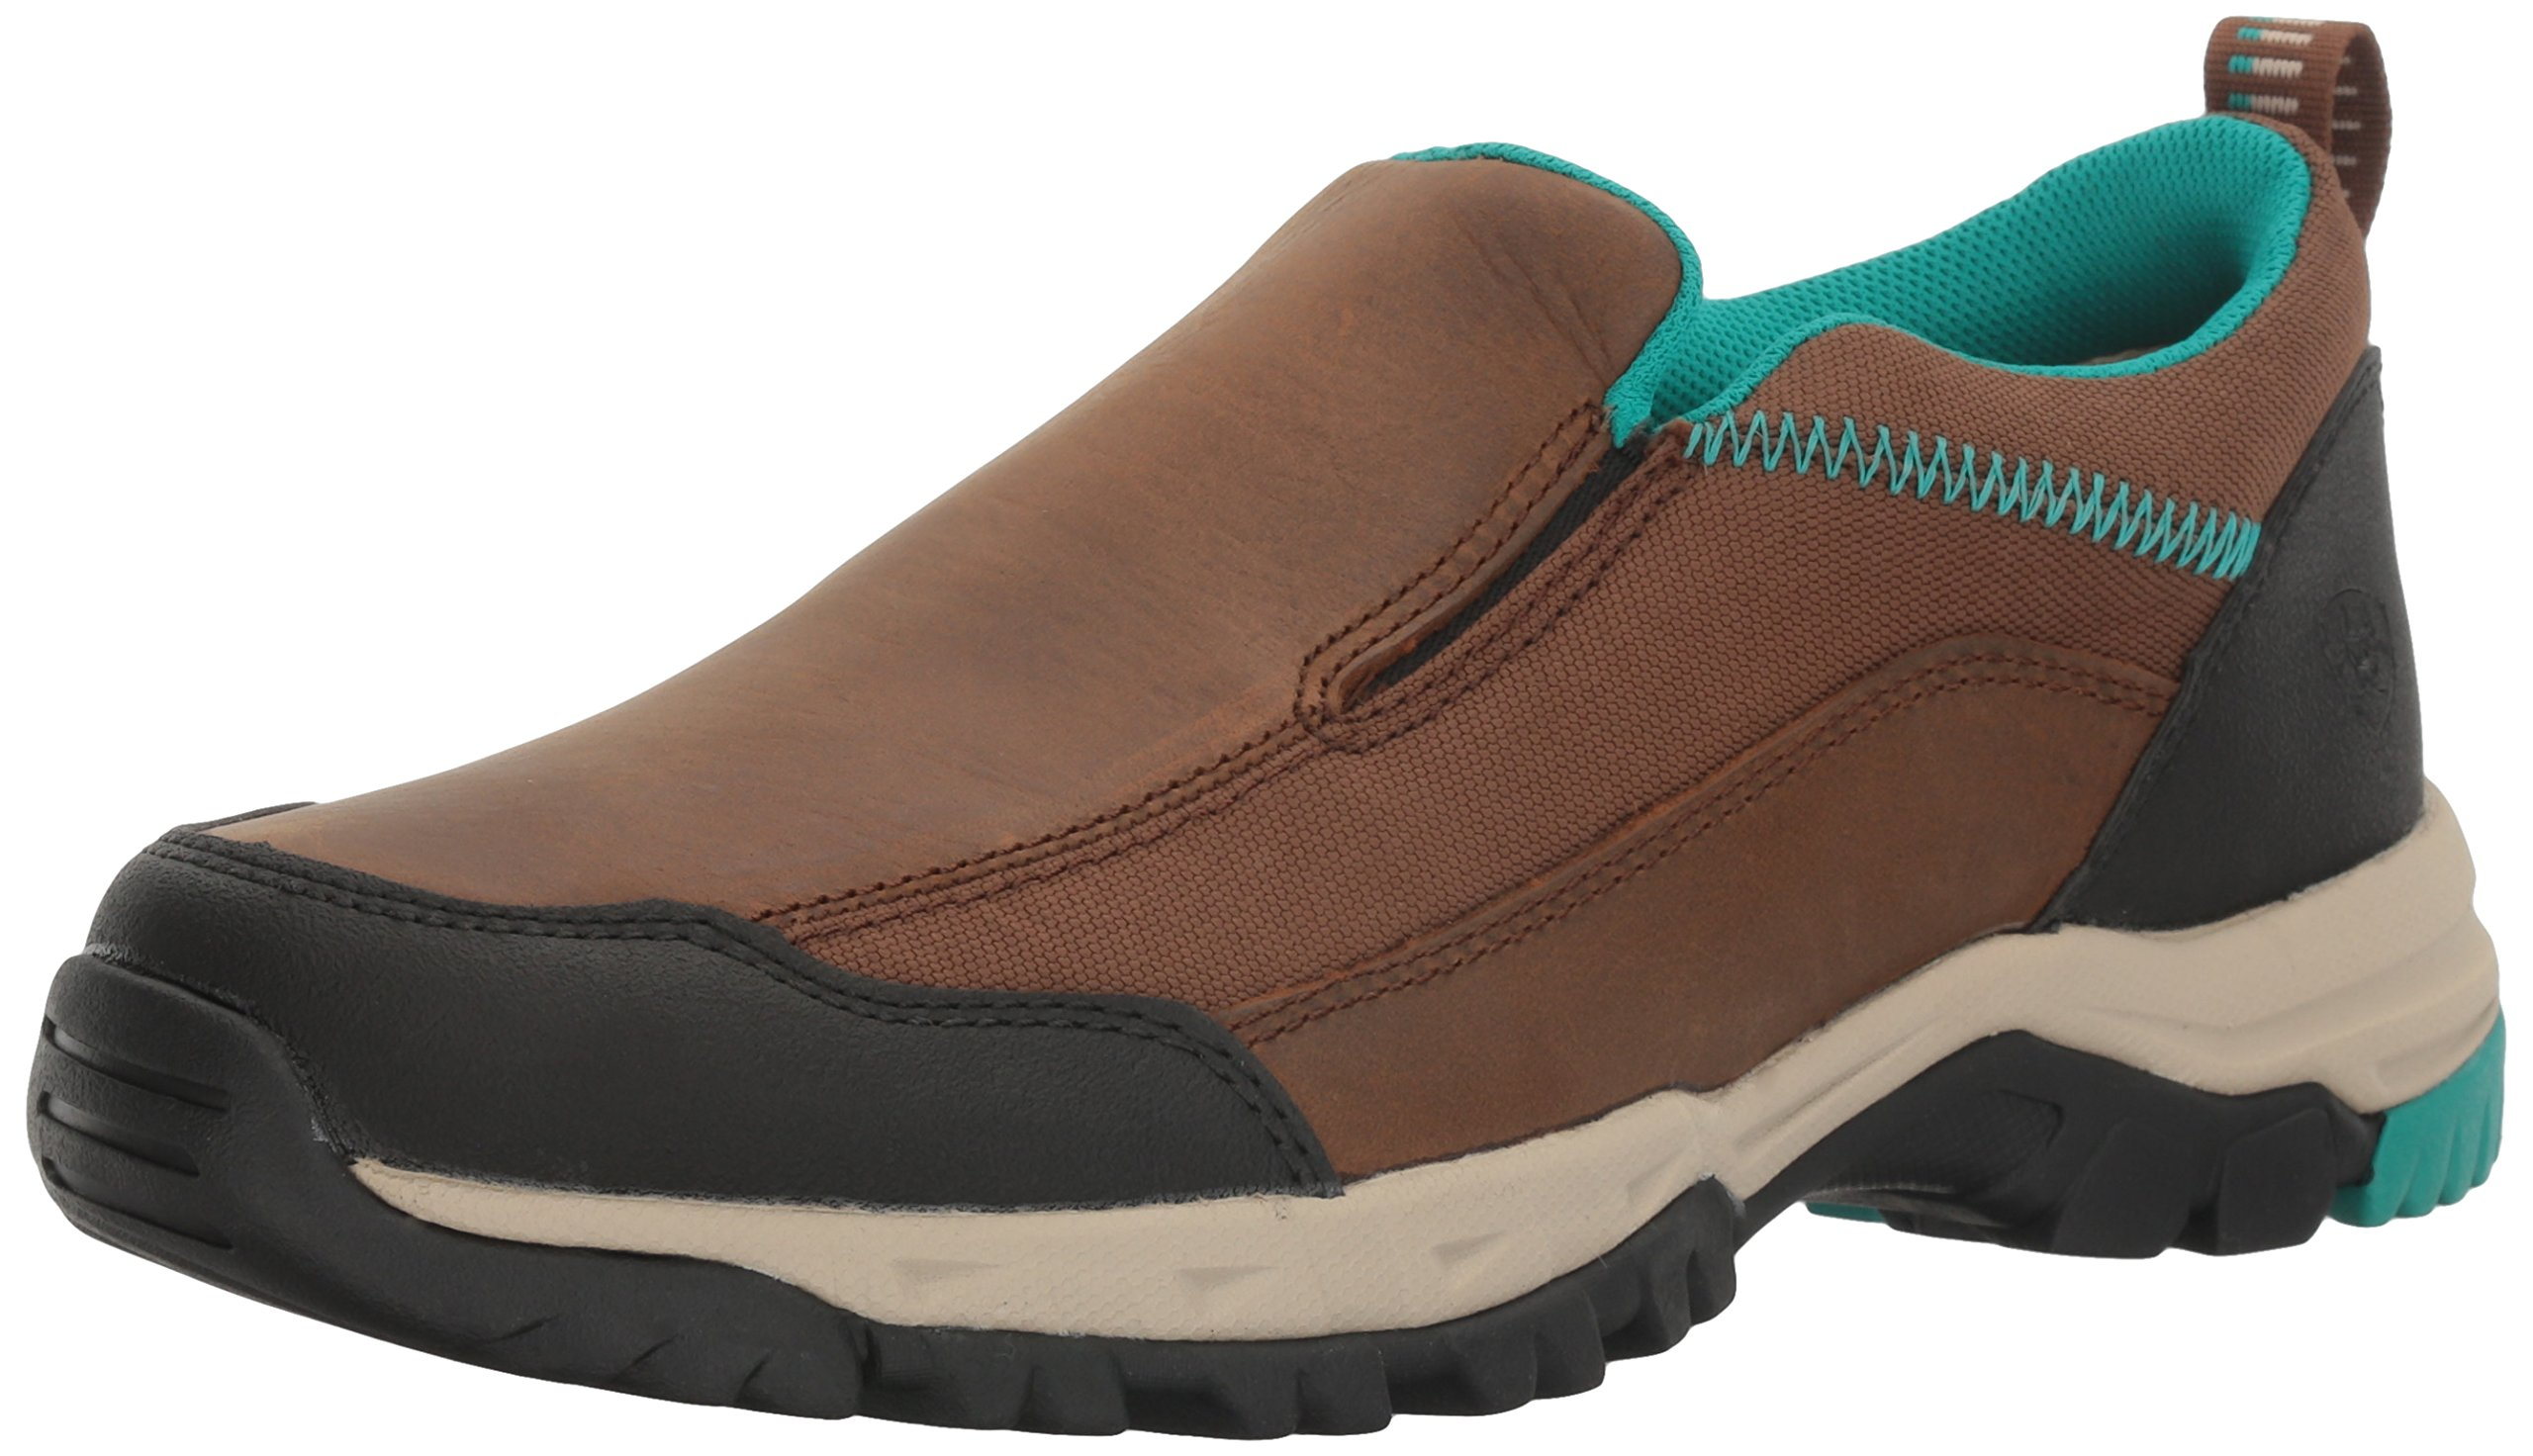 Ariat Women's Skyline Slip-on Hiking Shoe, Taupe, 8 B US by Ariat (Image #1)